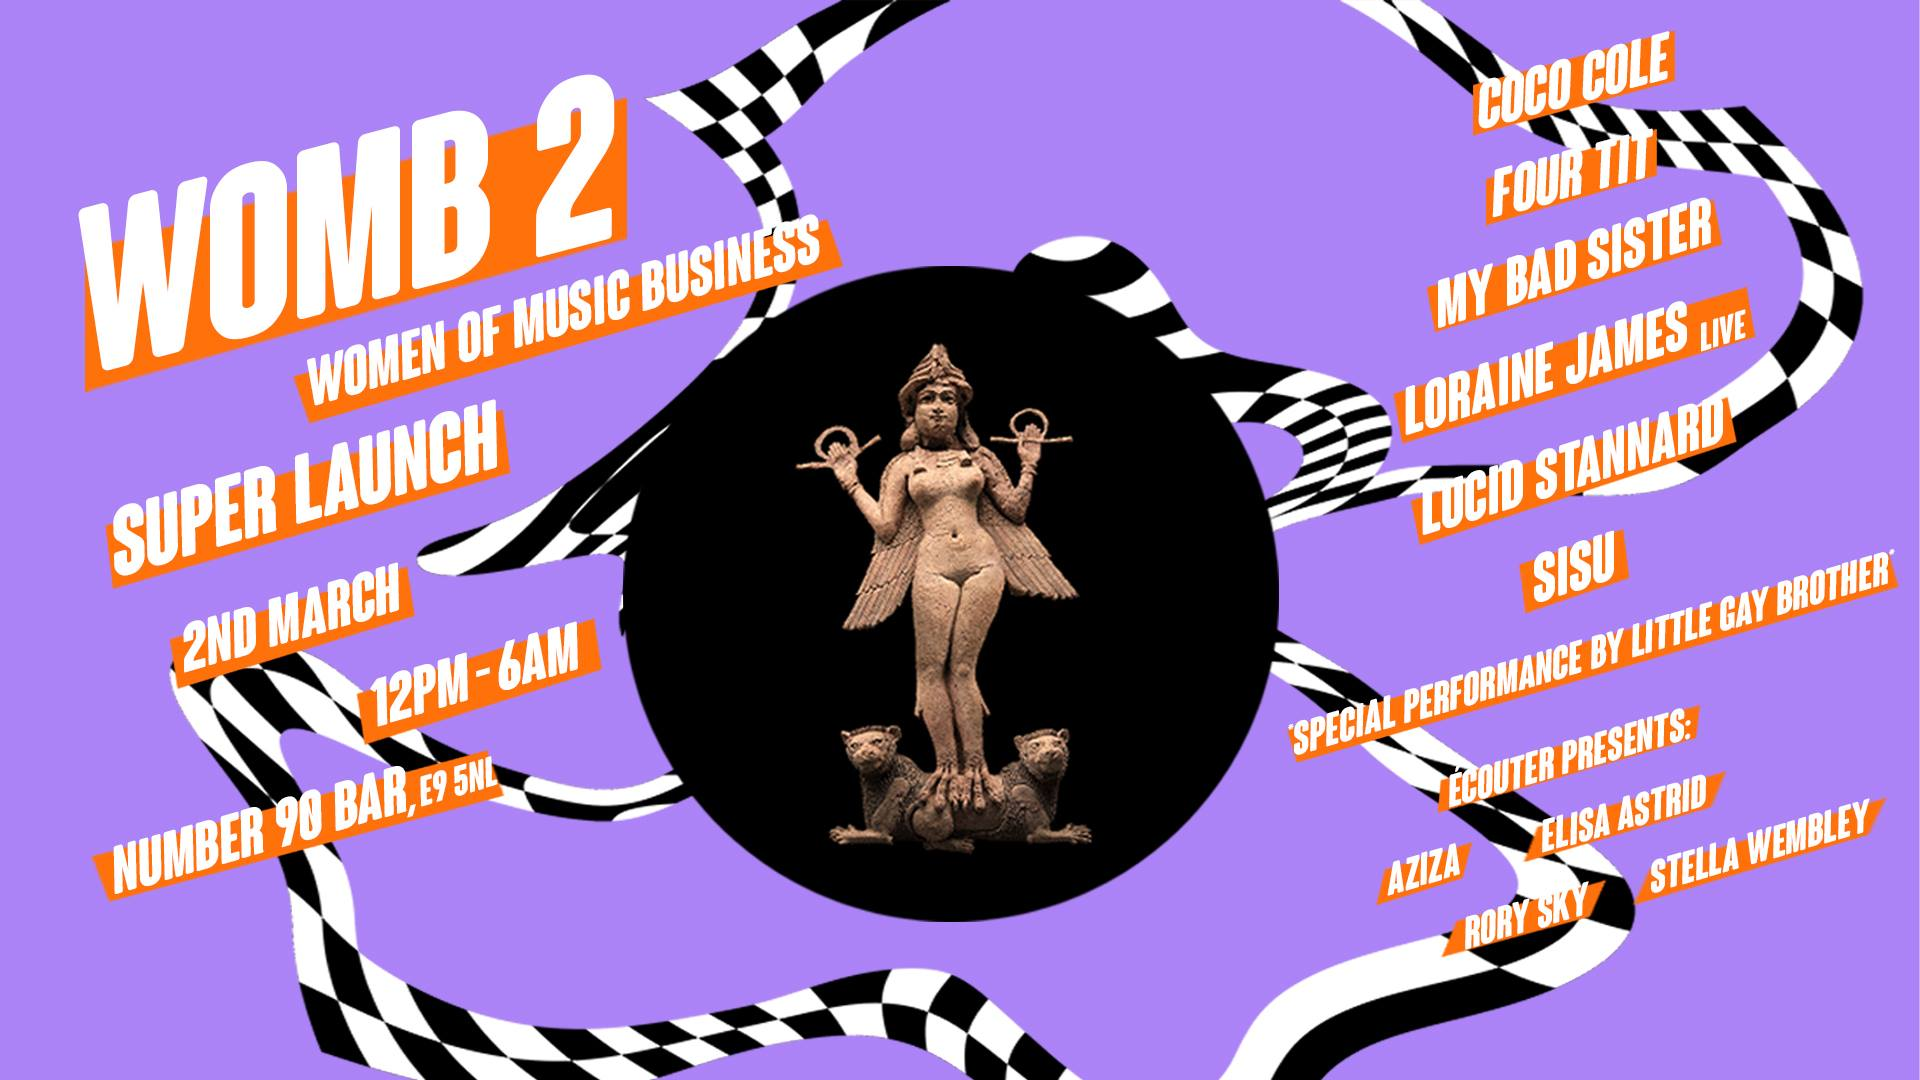 WOMB 2 (Women Of Music Business) heads in London this Friday